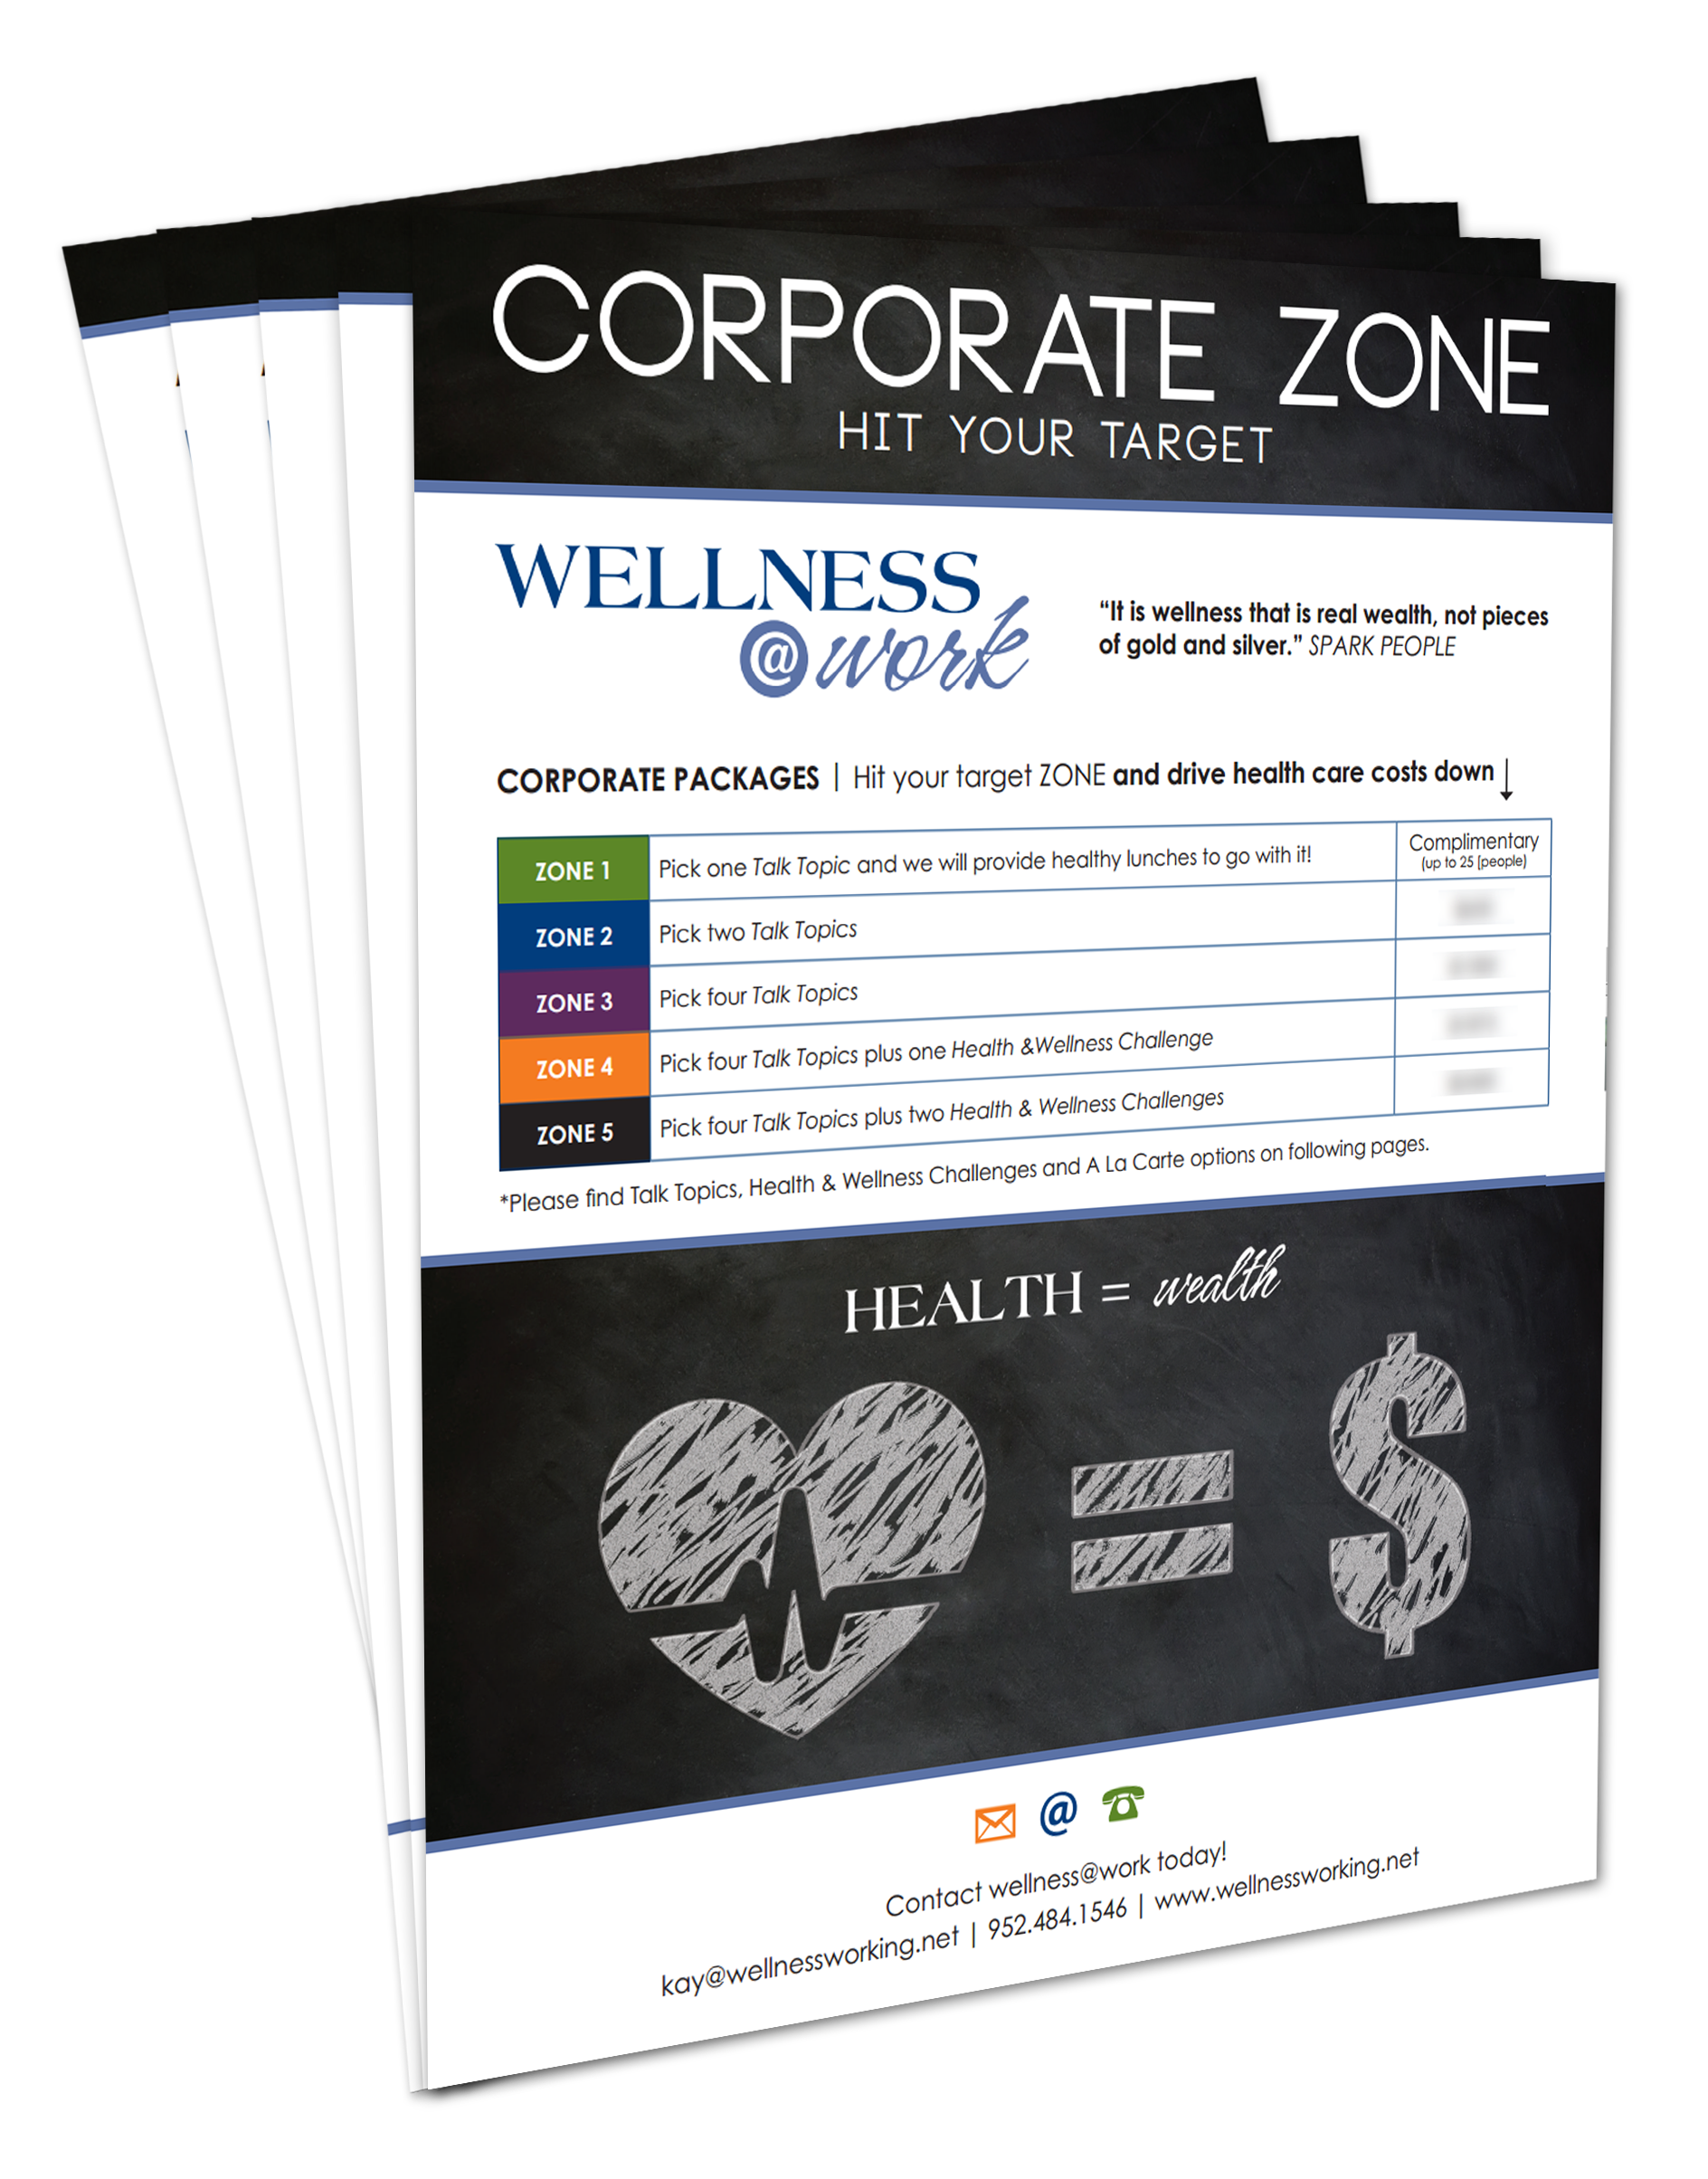 wellnessatwork-3dreport